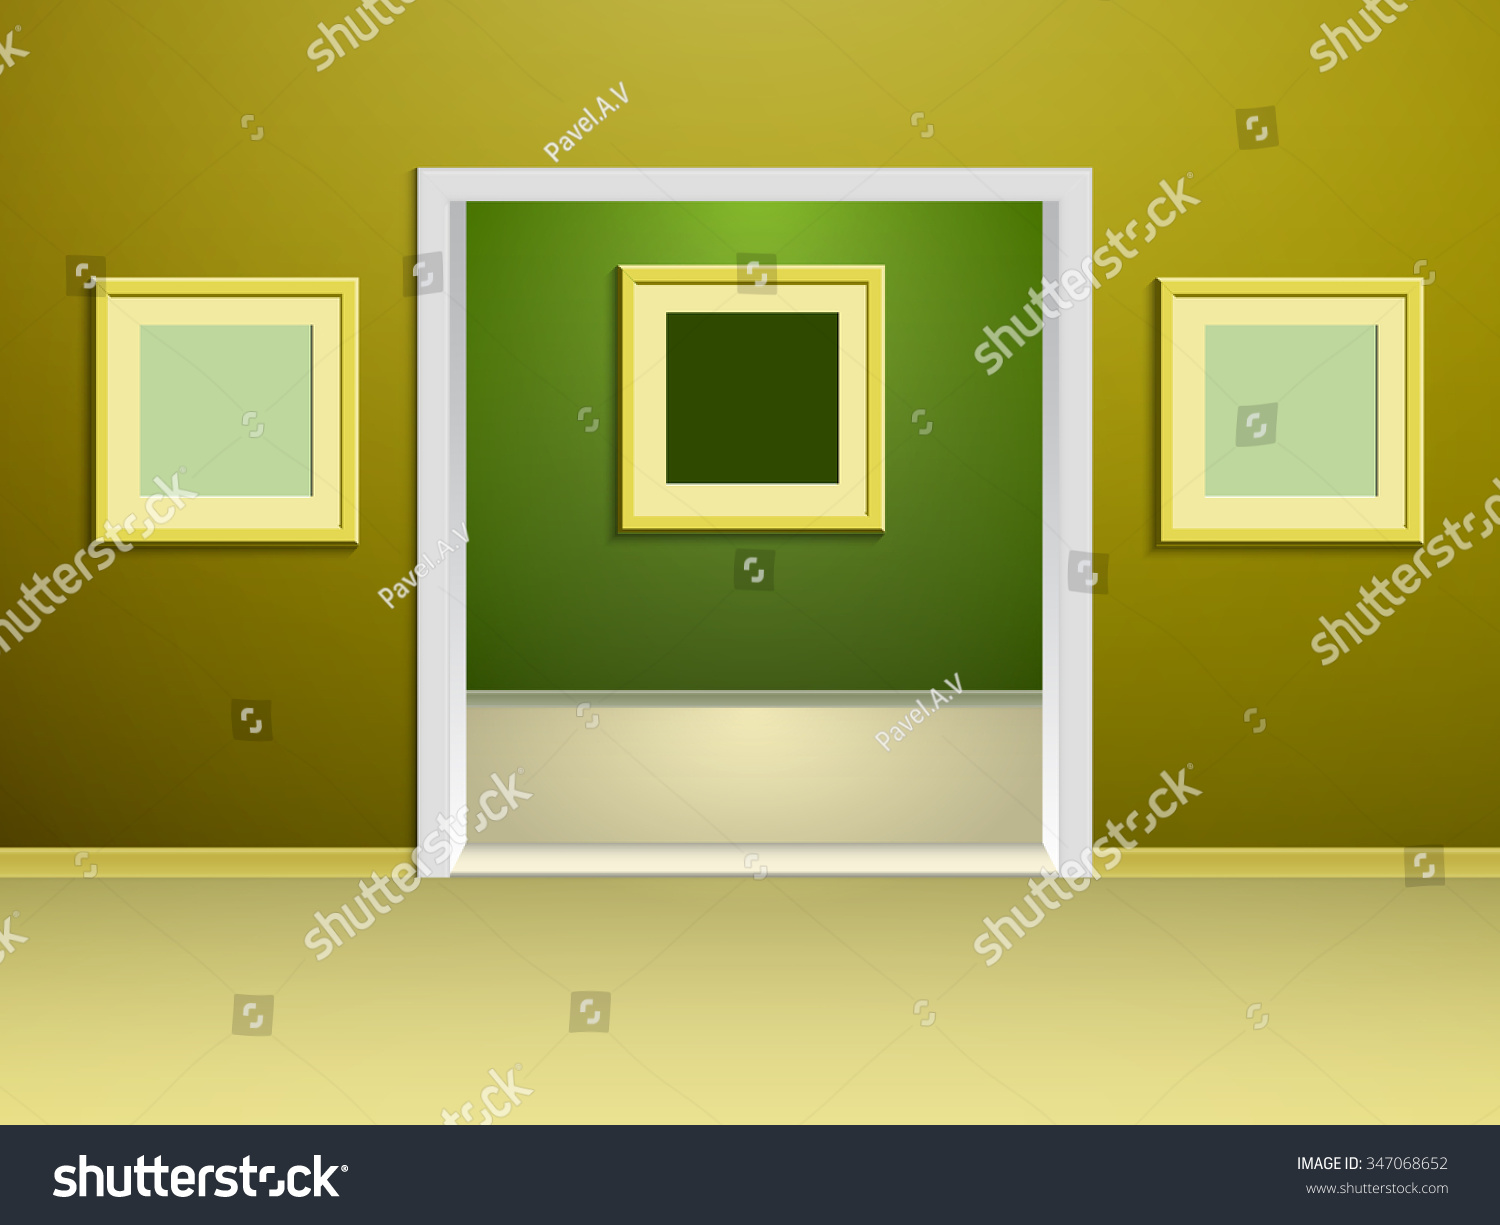 Two Rooms Gallery Yellow Green Walls Stock Vector 347068652 ...